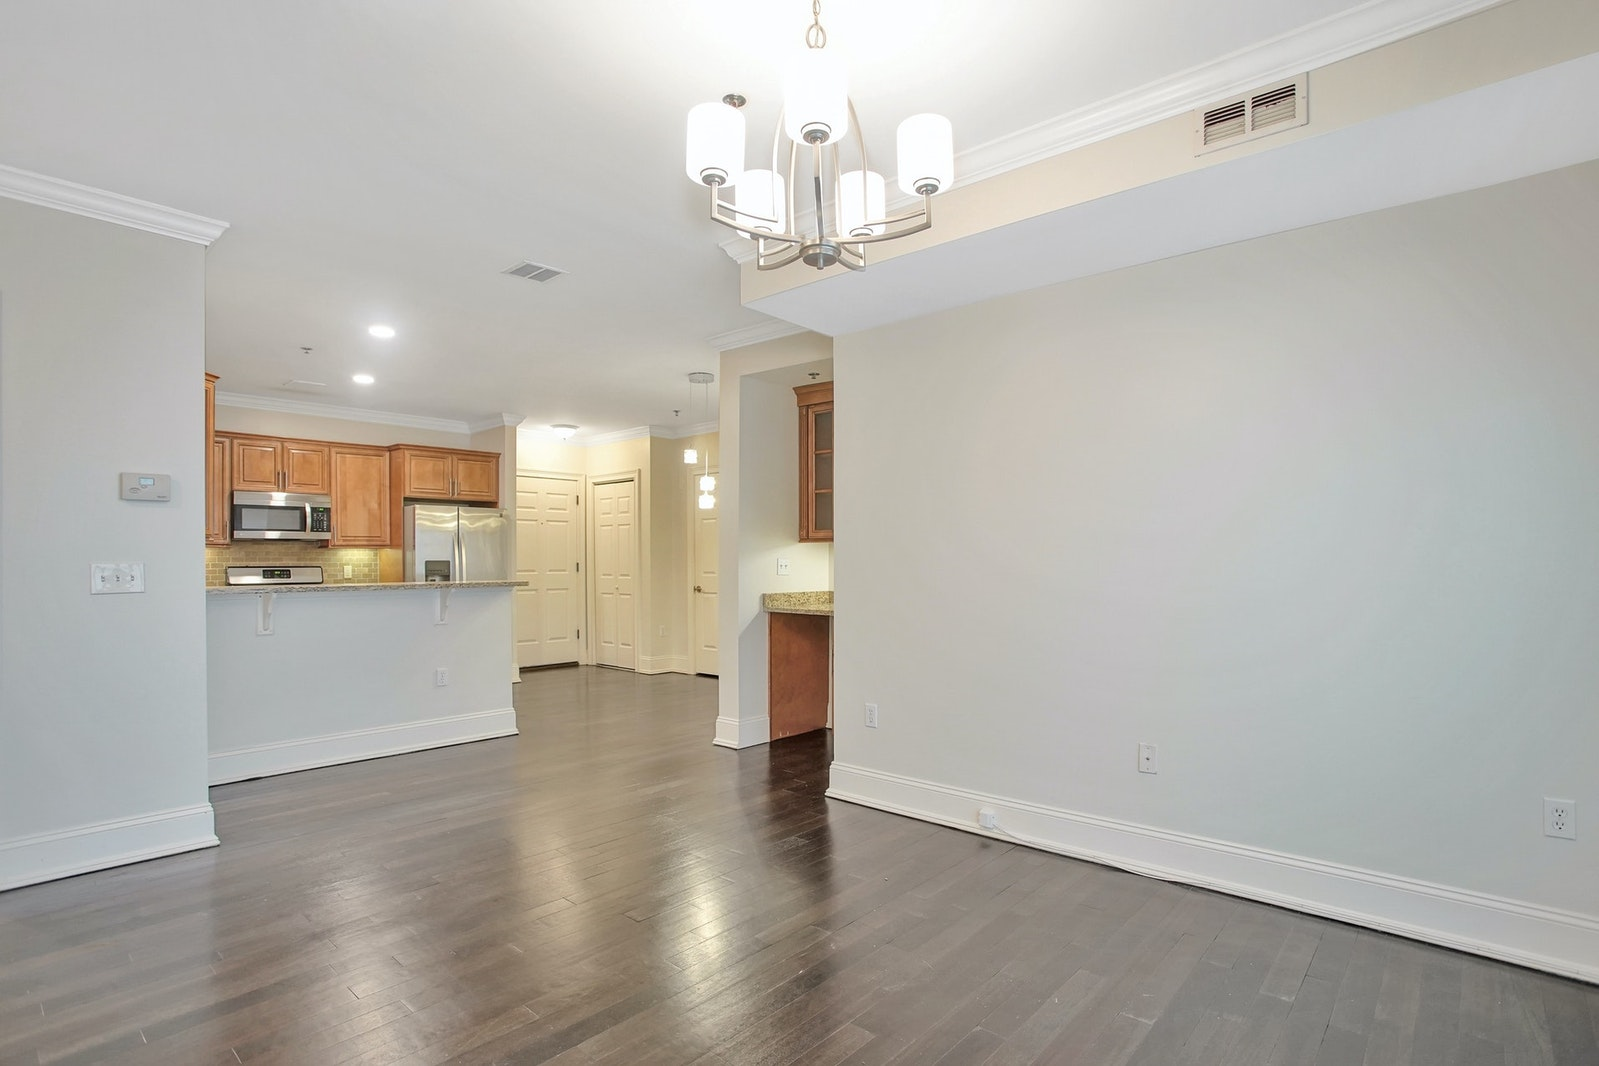 369 5th Street 10, Jersey City Downtown, New Jersey, 07302, $675,000, Property For Sale, Halstead Real Estate, Photo 3